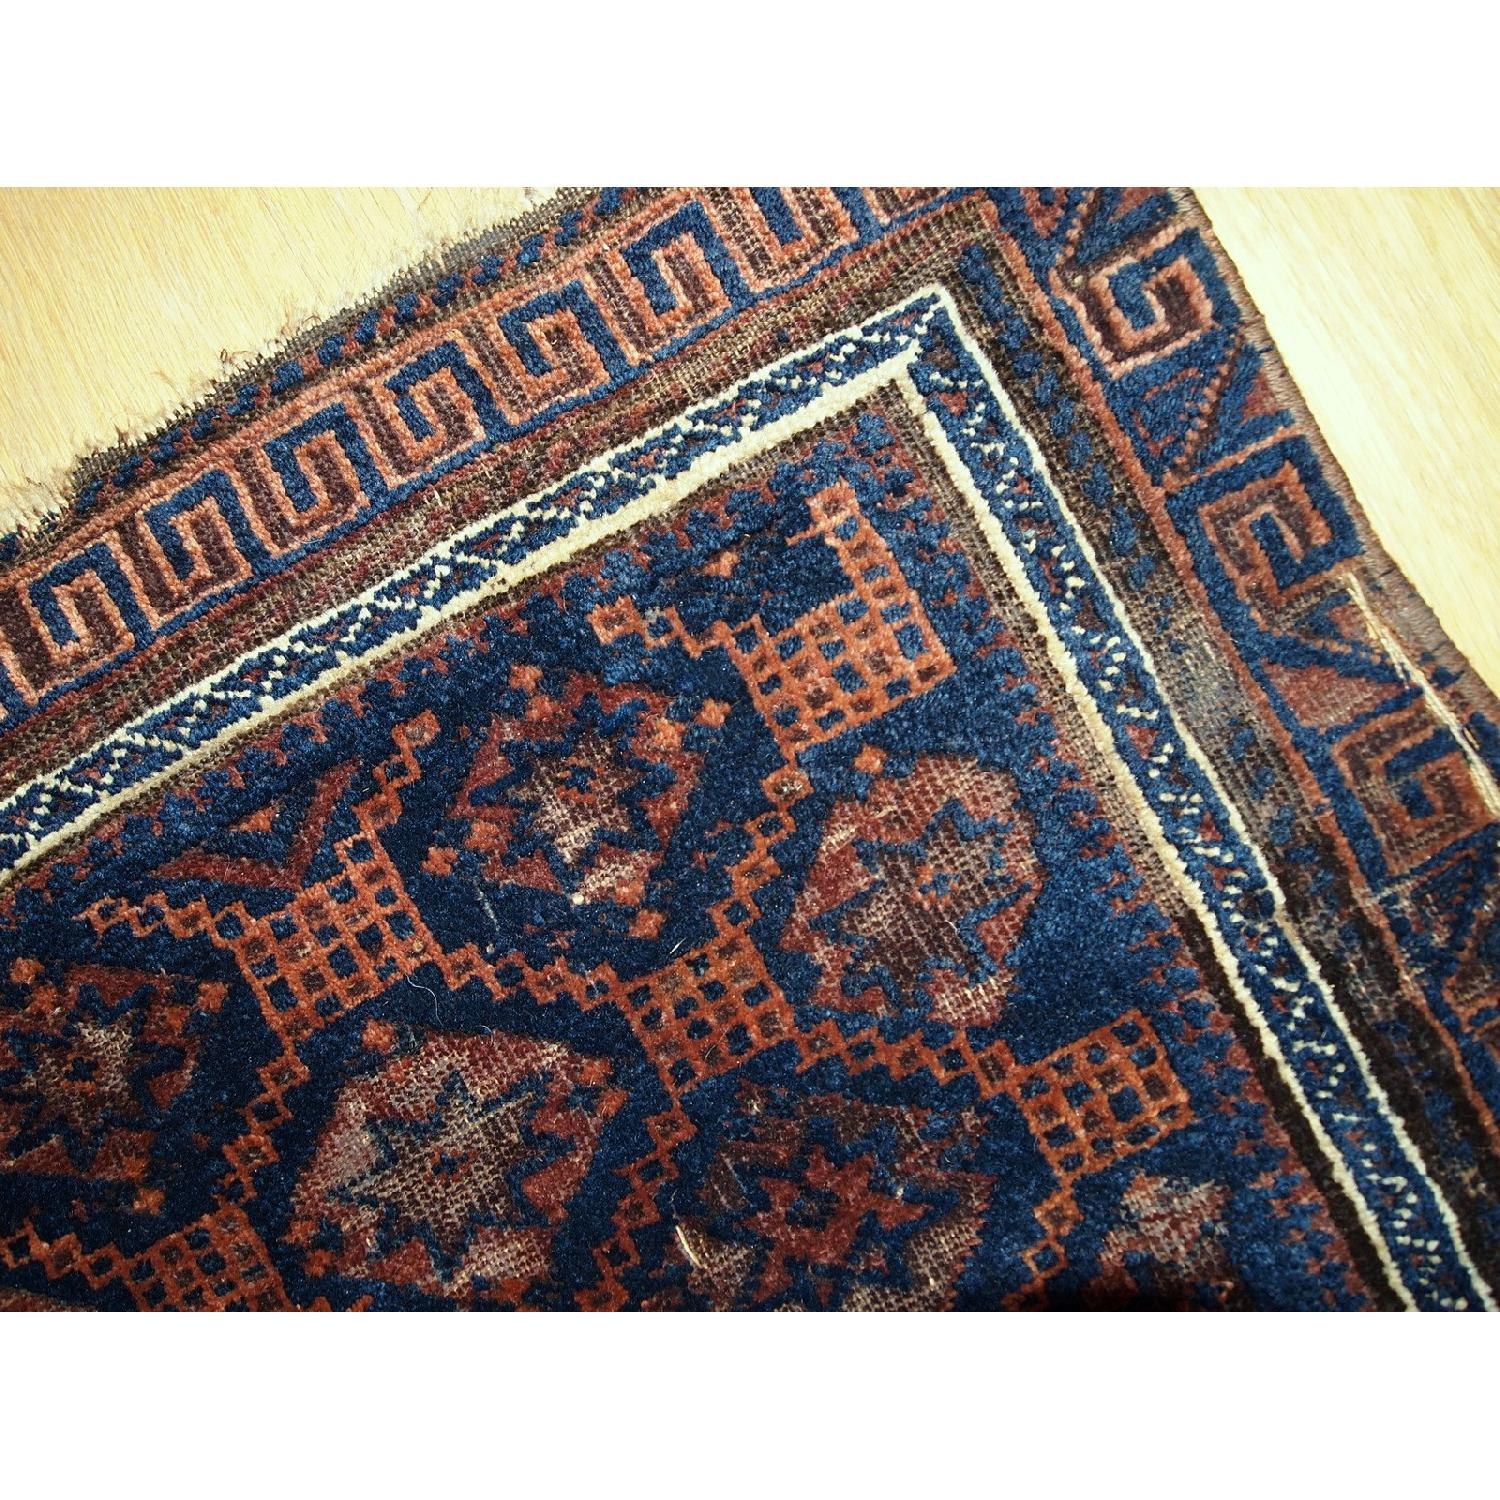 Antique Handmade Collectible Afghan Baluch Bag Face Rug-6